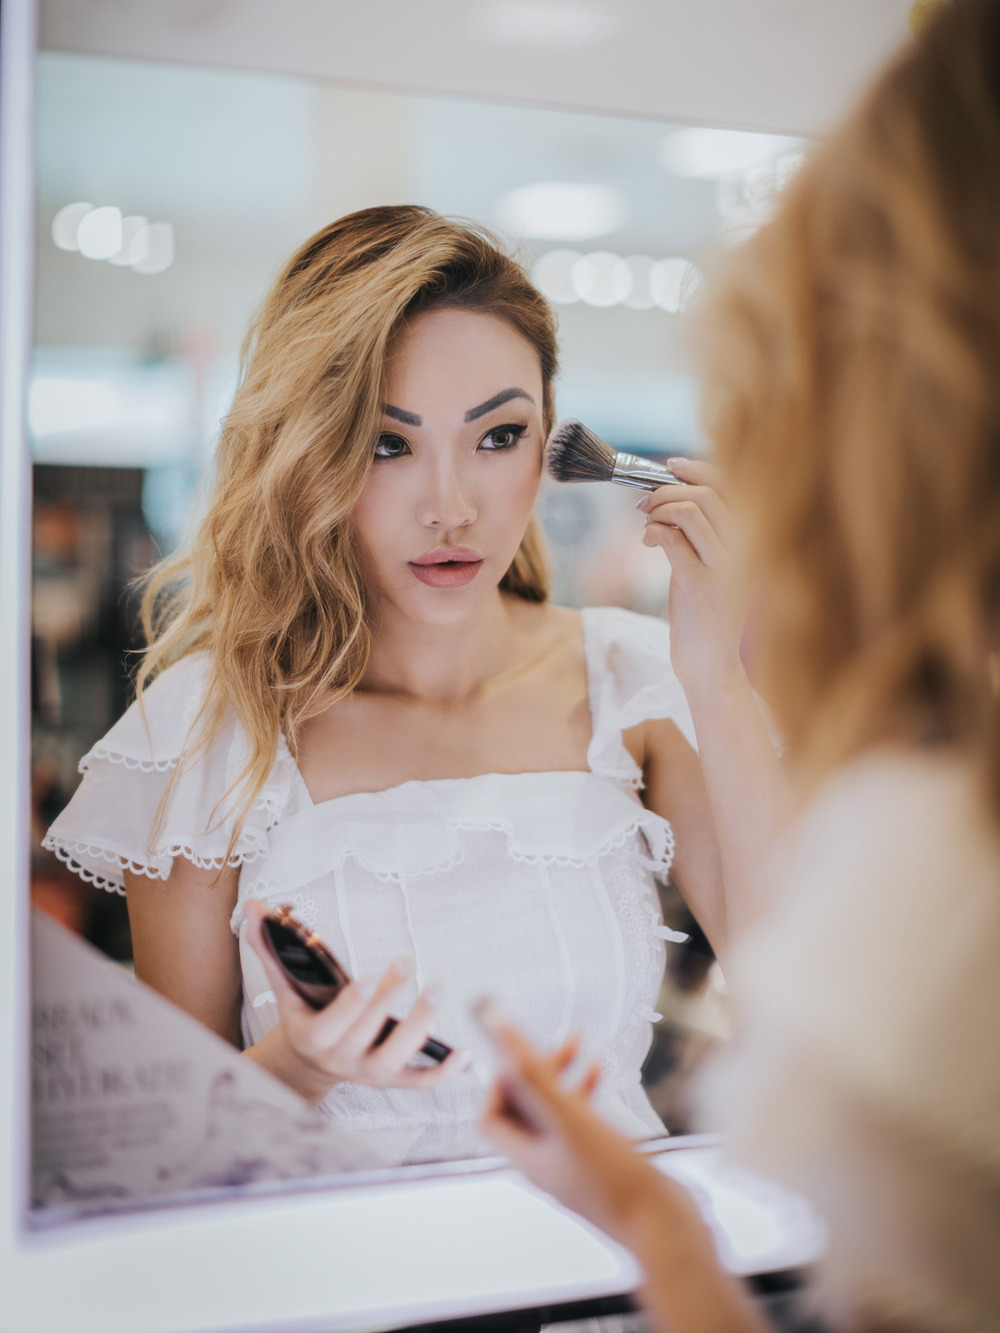 Contouring Jawline With Makeup - Wheretoget